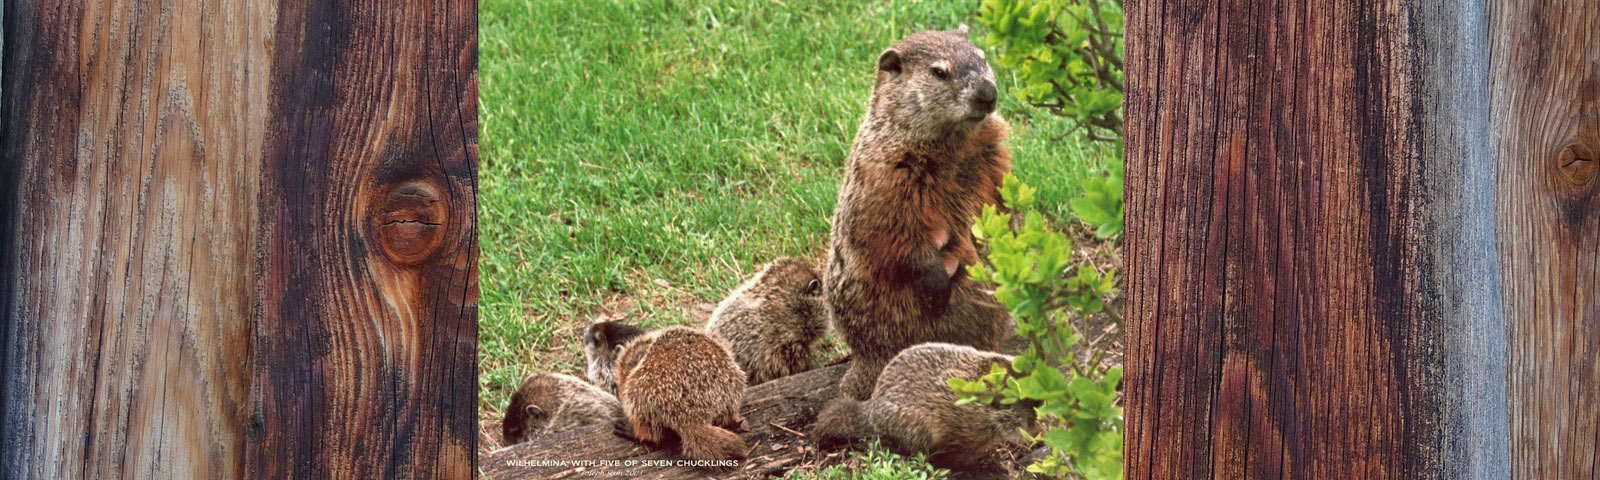 Woodchuck Wonderland